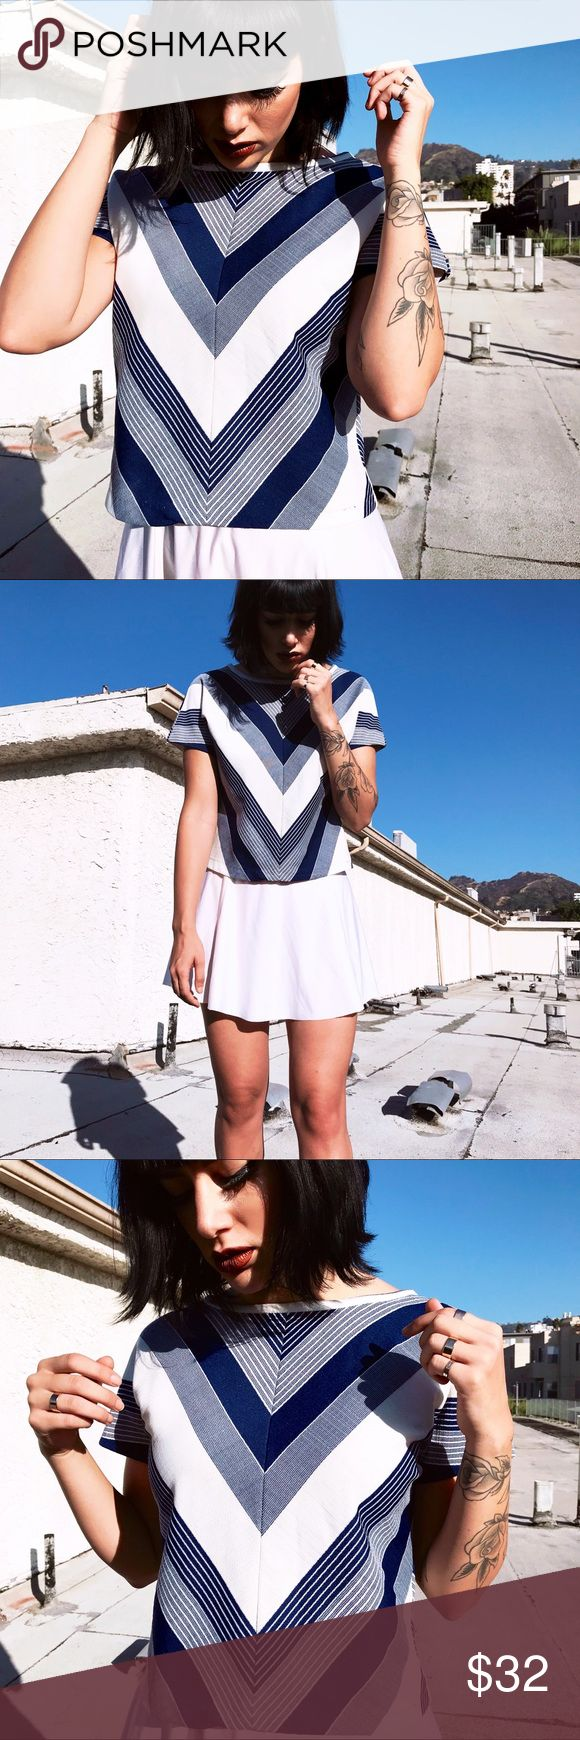 60s Chevron Striped Mod Twiggy Shirt Blouse Top 60s Chevron Striped Mod Shirt 💘 Oh hell YAS. This vintage chevron top is epic. Selfie worthy. Features beautifully symmetrical print for all you OCD angels. Front and back chevron. Kinda flawless.  Fits S-M. Perf condition. The little mod skirt is also available in the shop. Tops Blouses